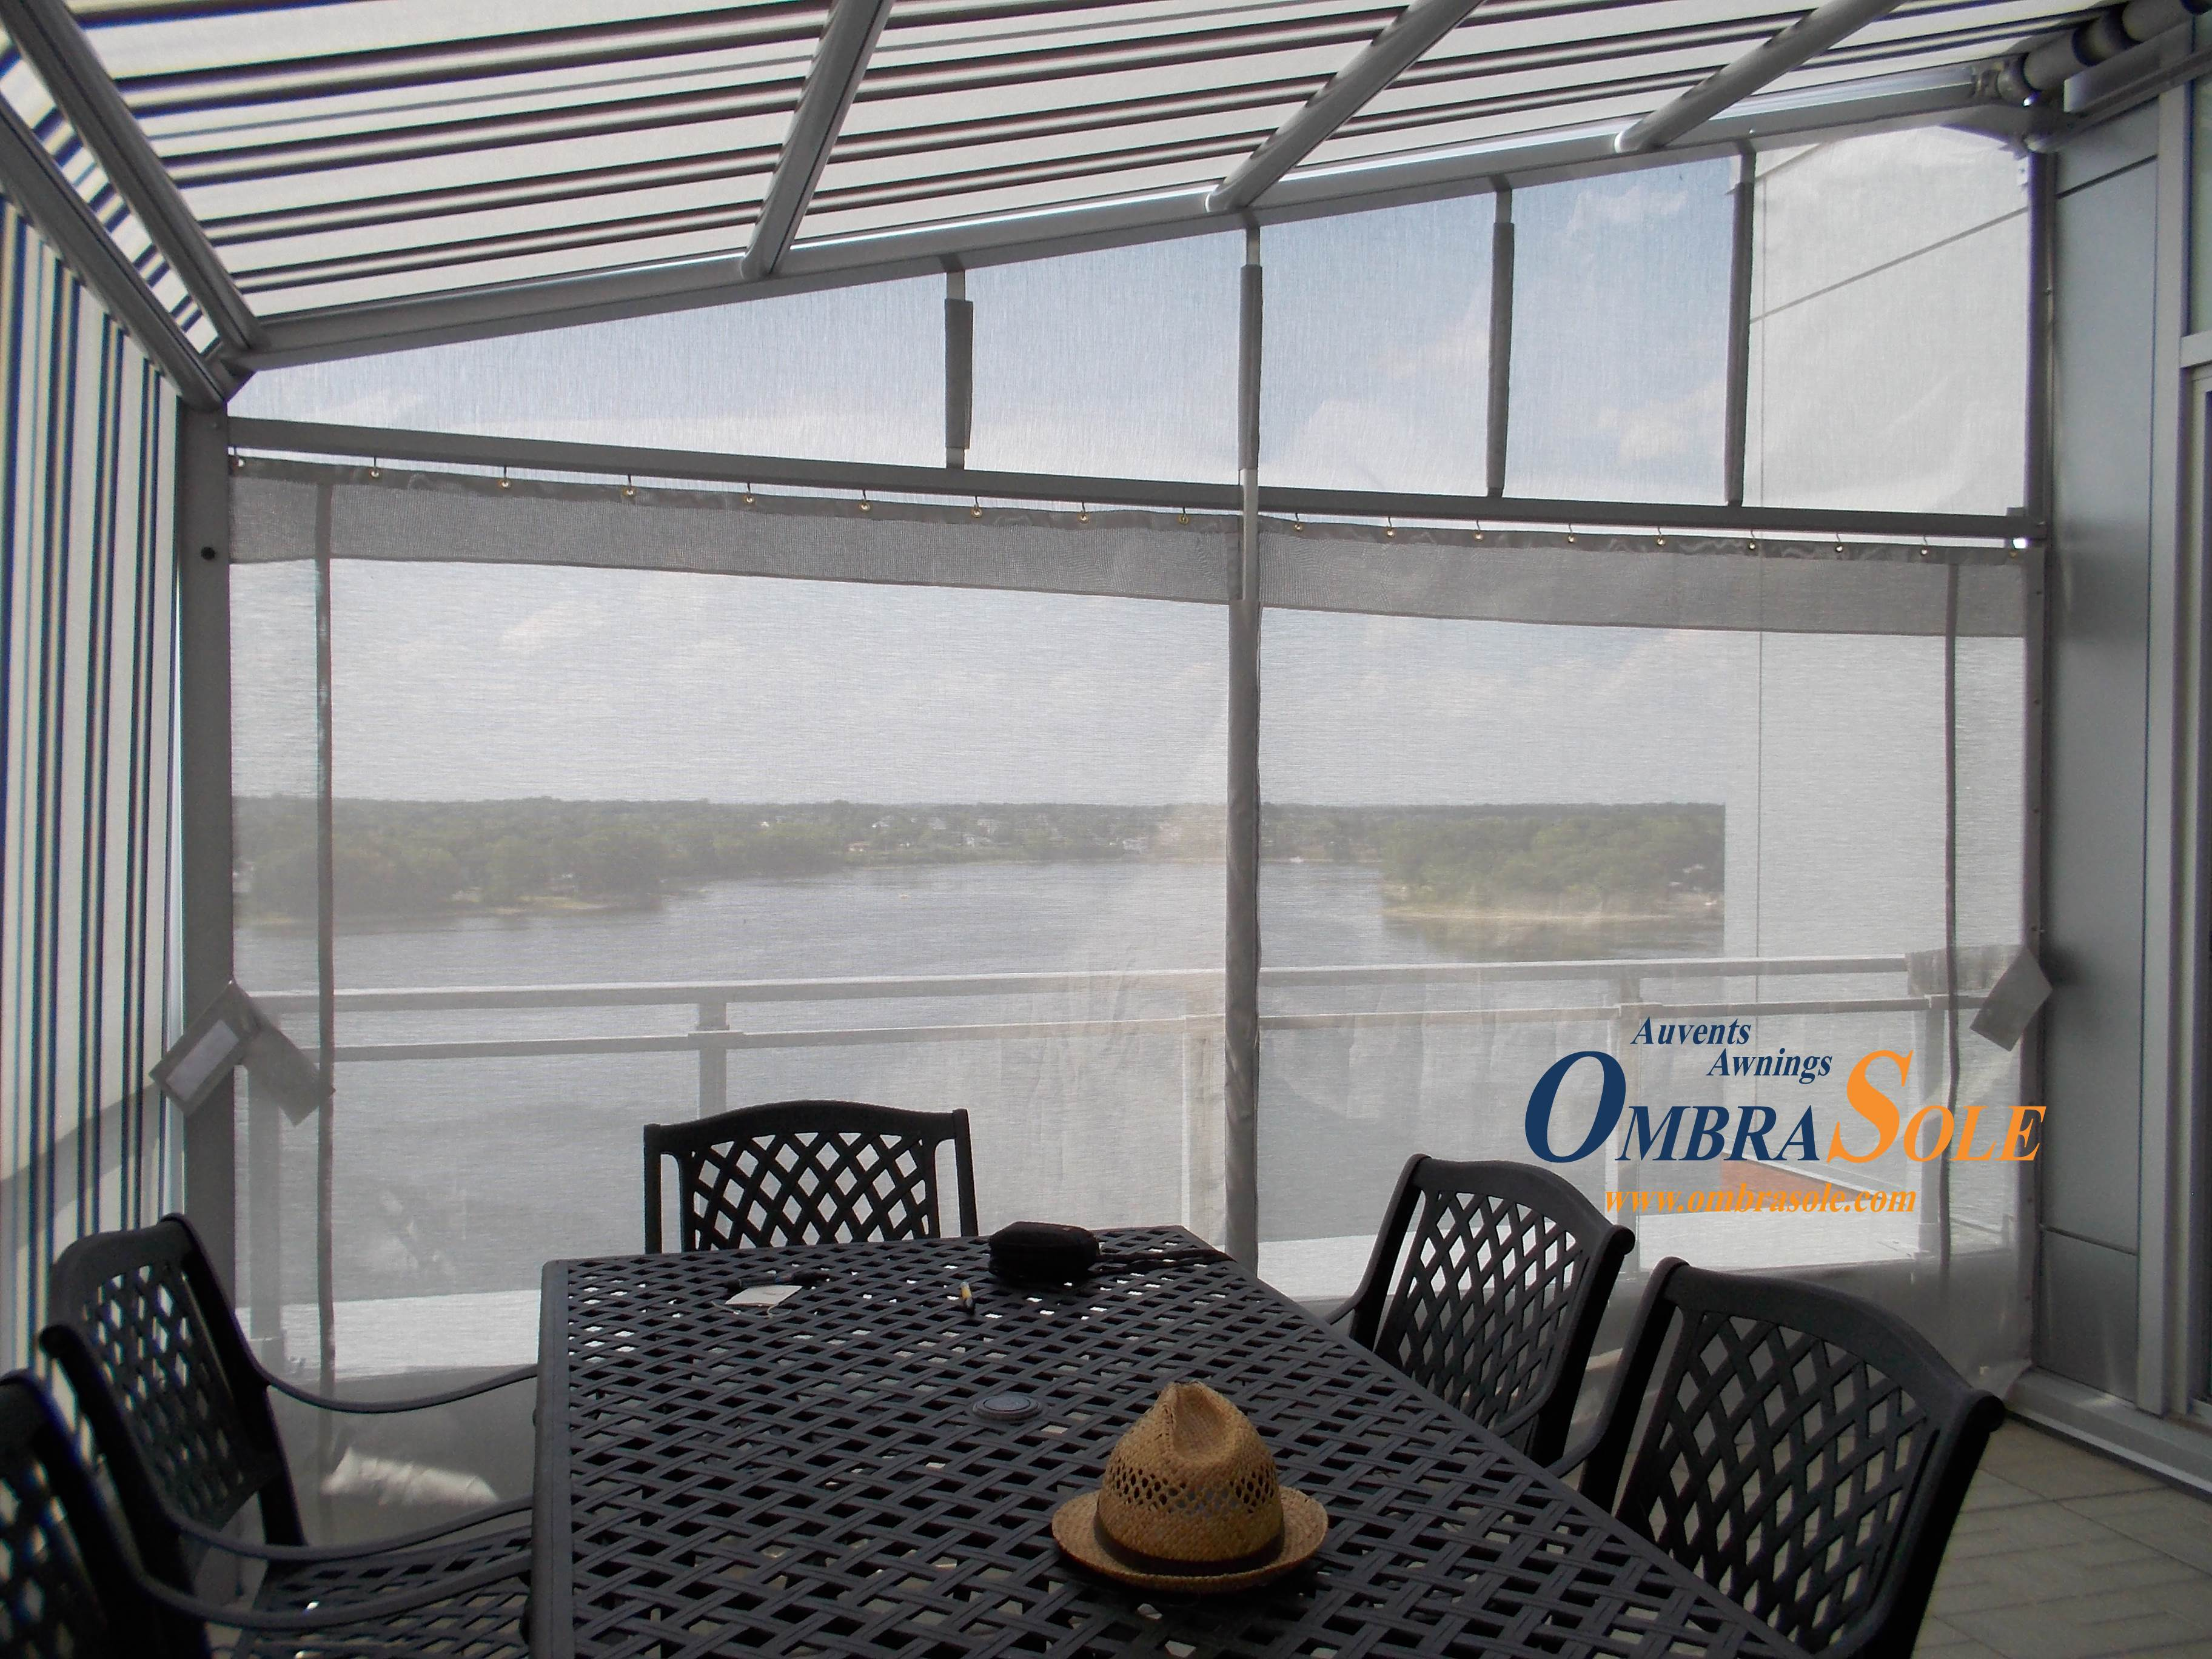 ombrasole awnings | retractable awnings with canvas or a louvered